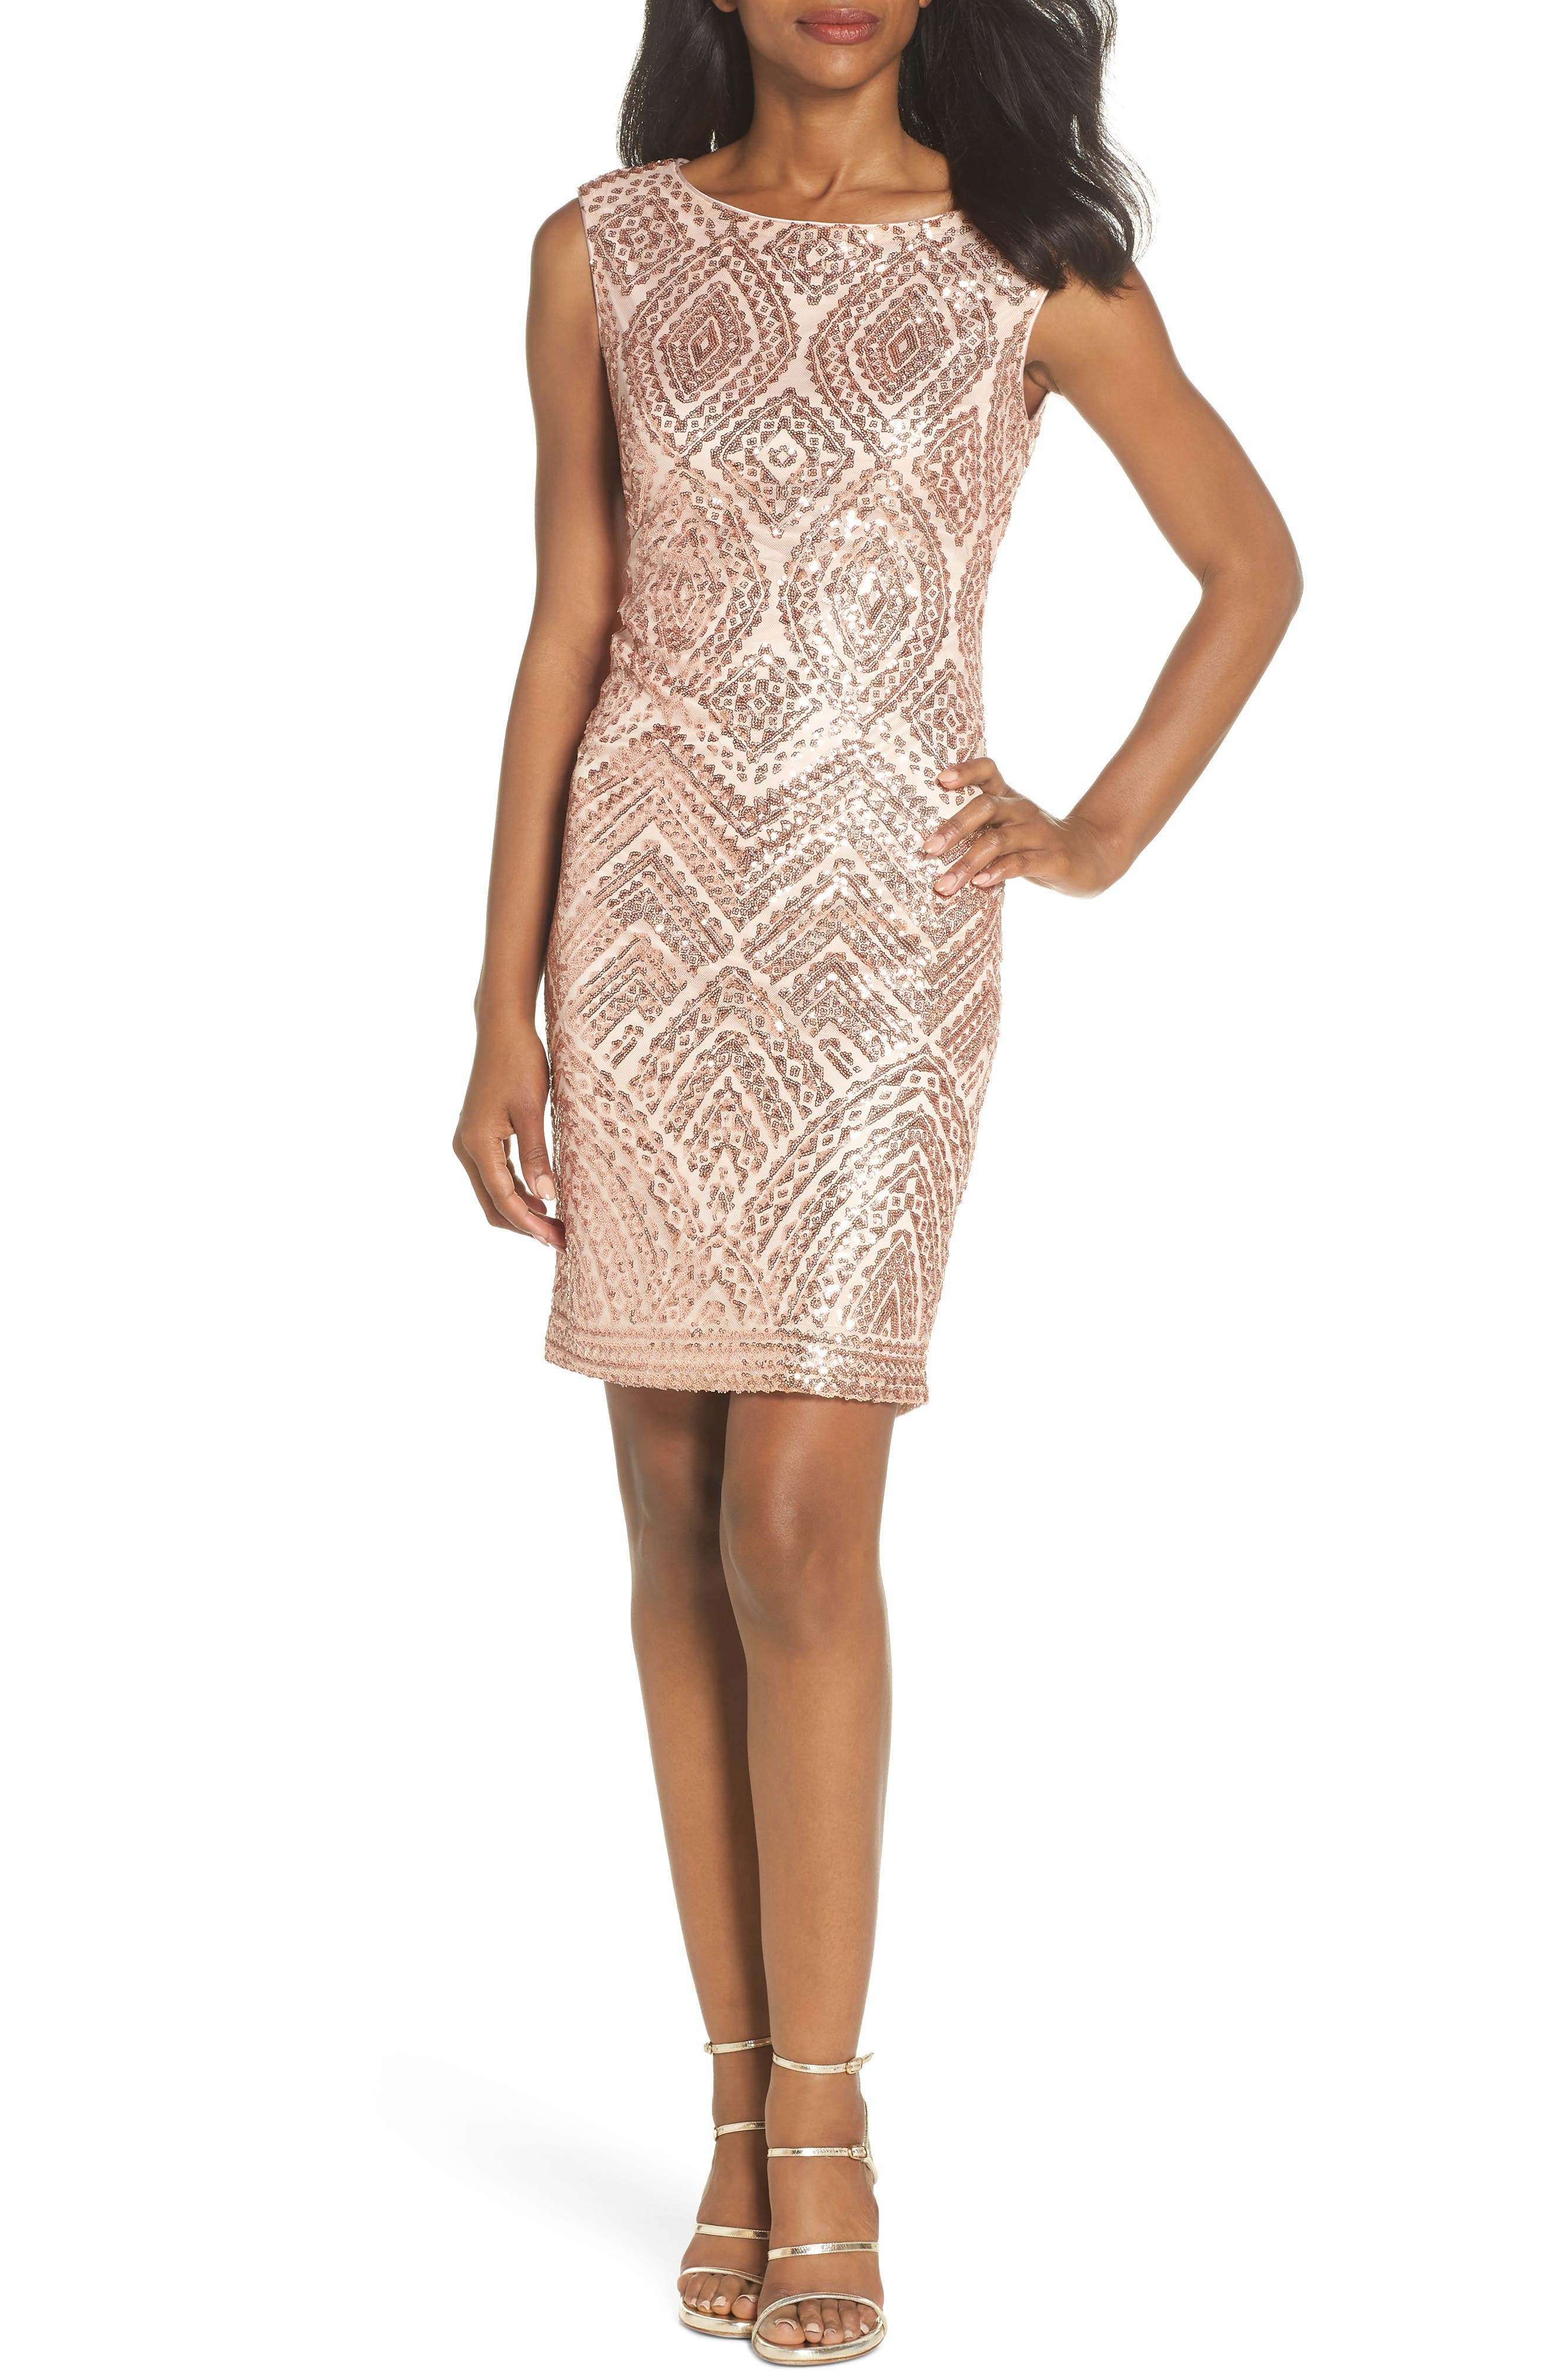 VINCE CAMUTO Sequin Embellished Cocktail Dress, Main, color, 254